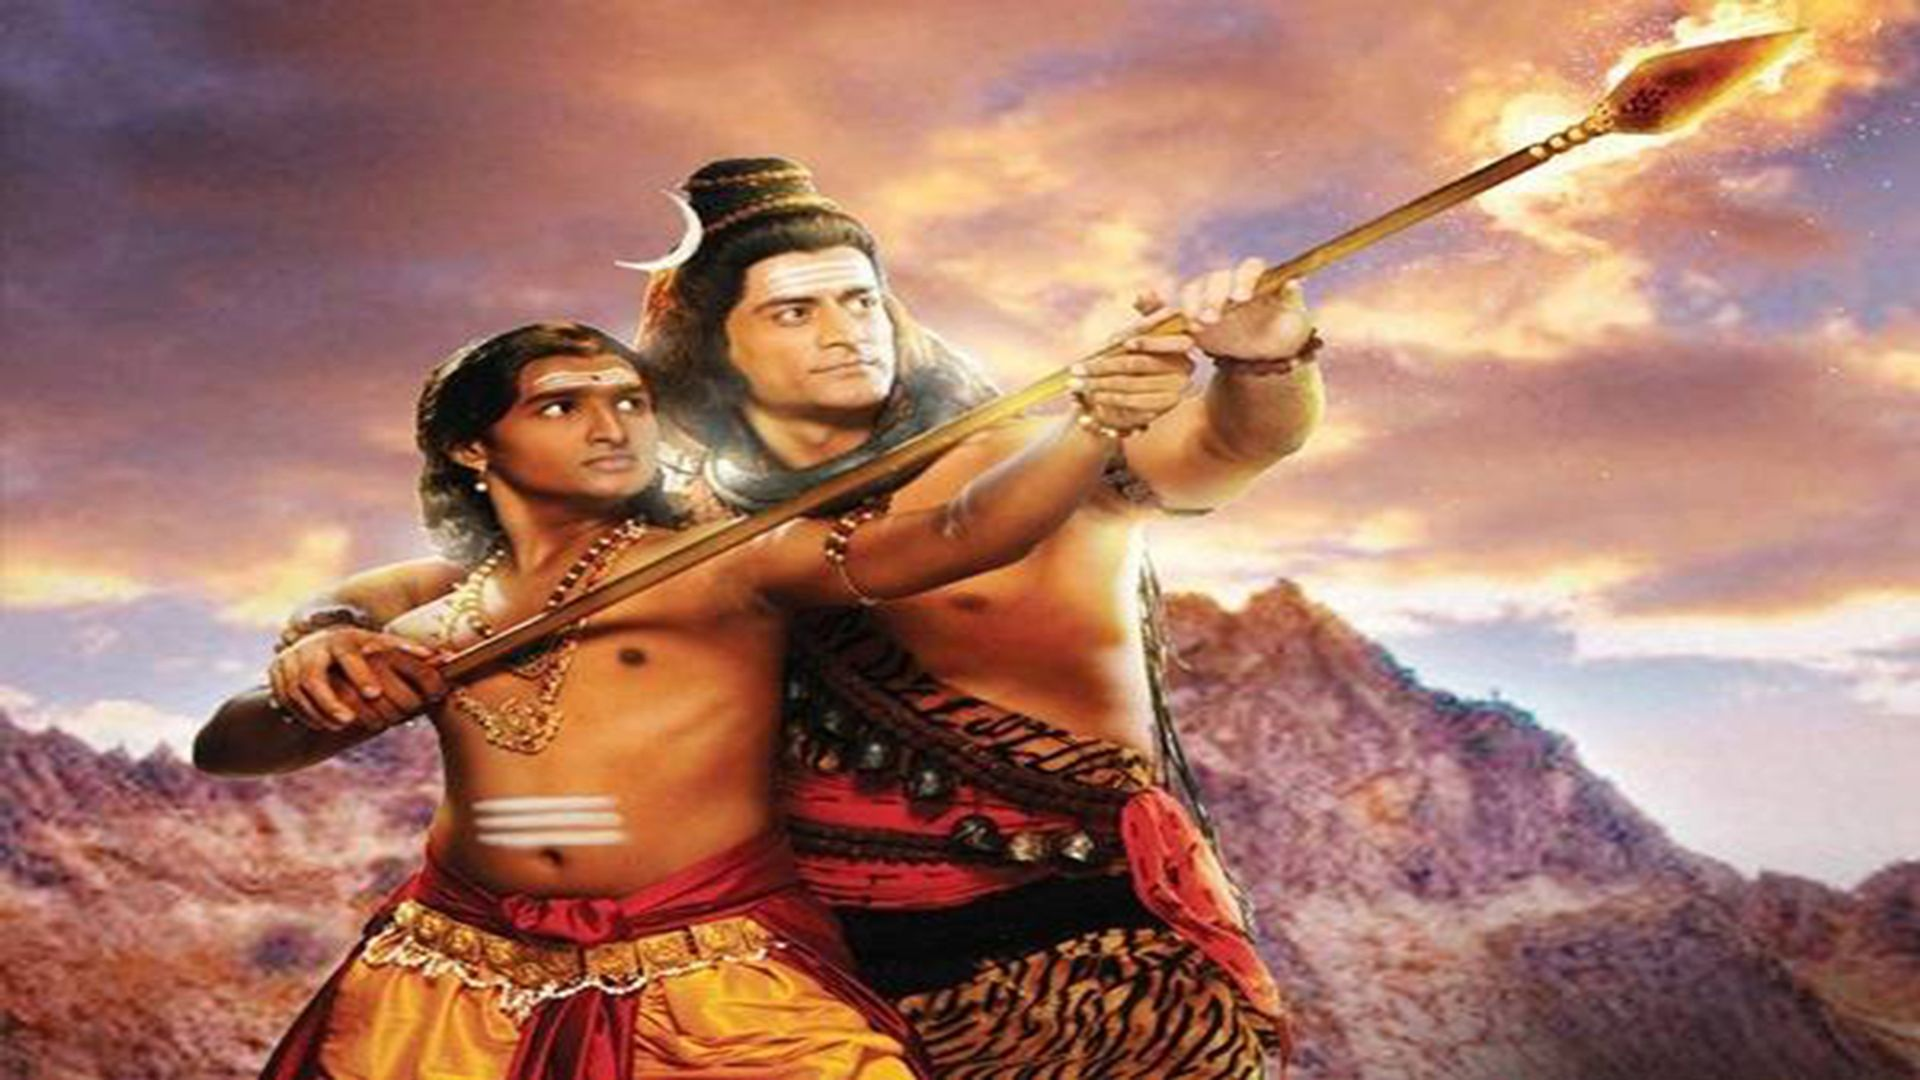 Season 18, Episode 08 Parvati Welcomes Ganesha And Kartikey To Kailash